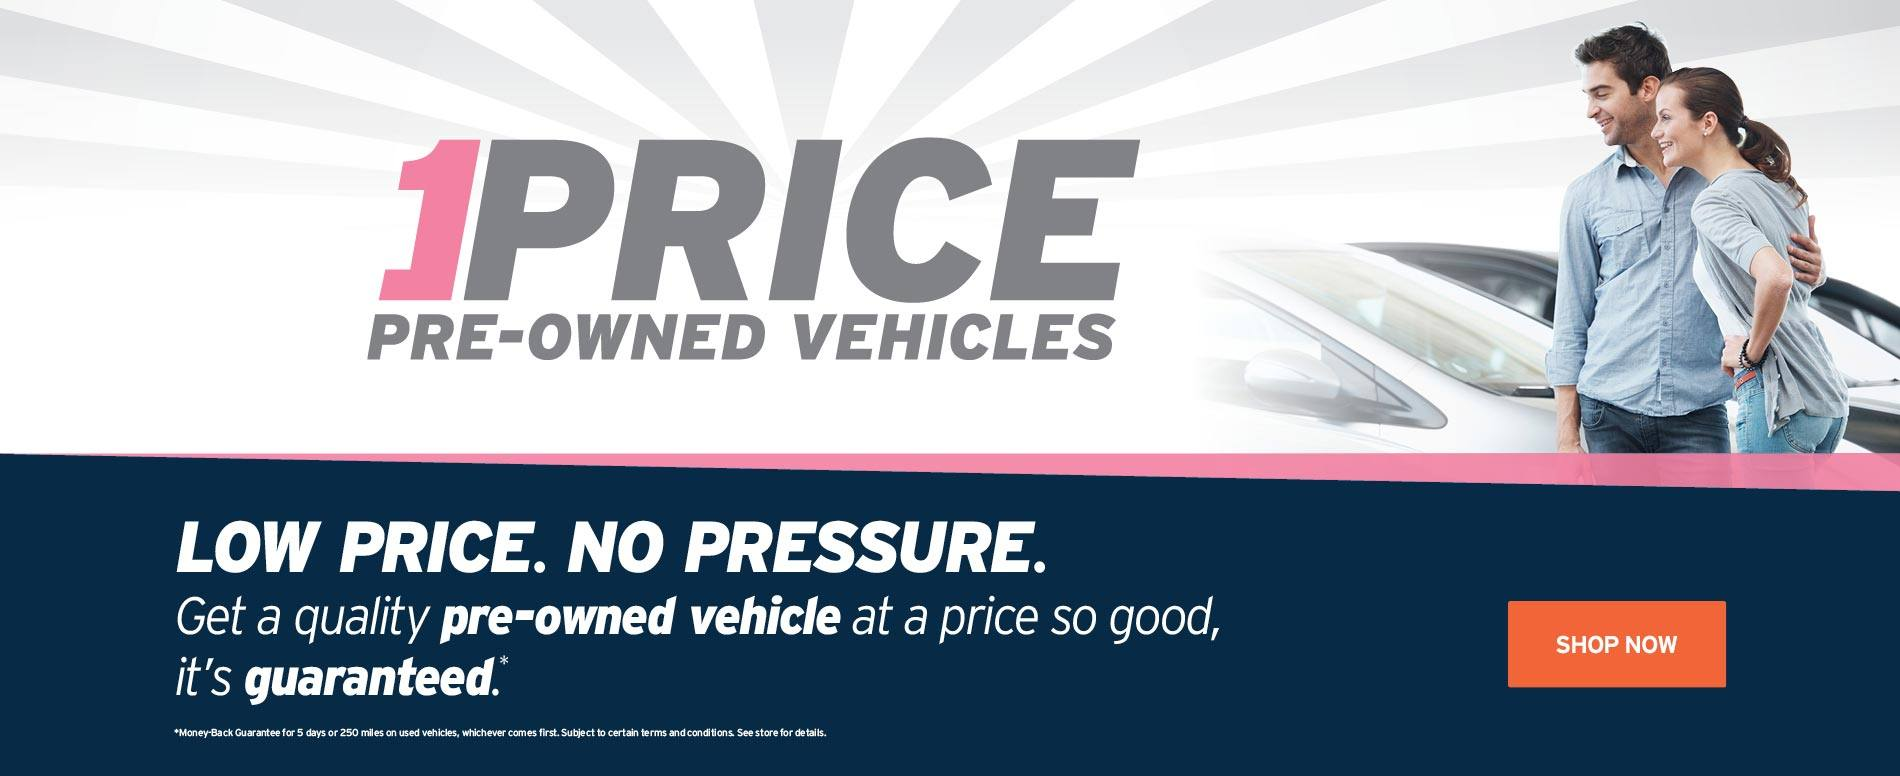 AutoNation 1Price Pre-Owned Vehicle information